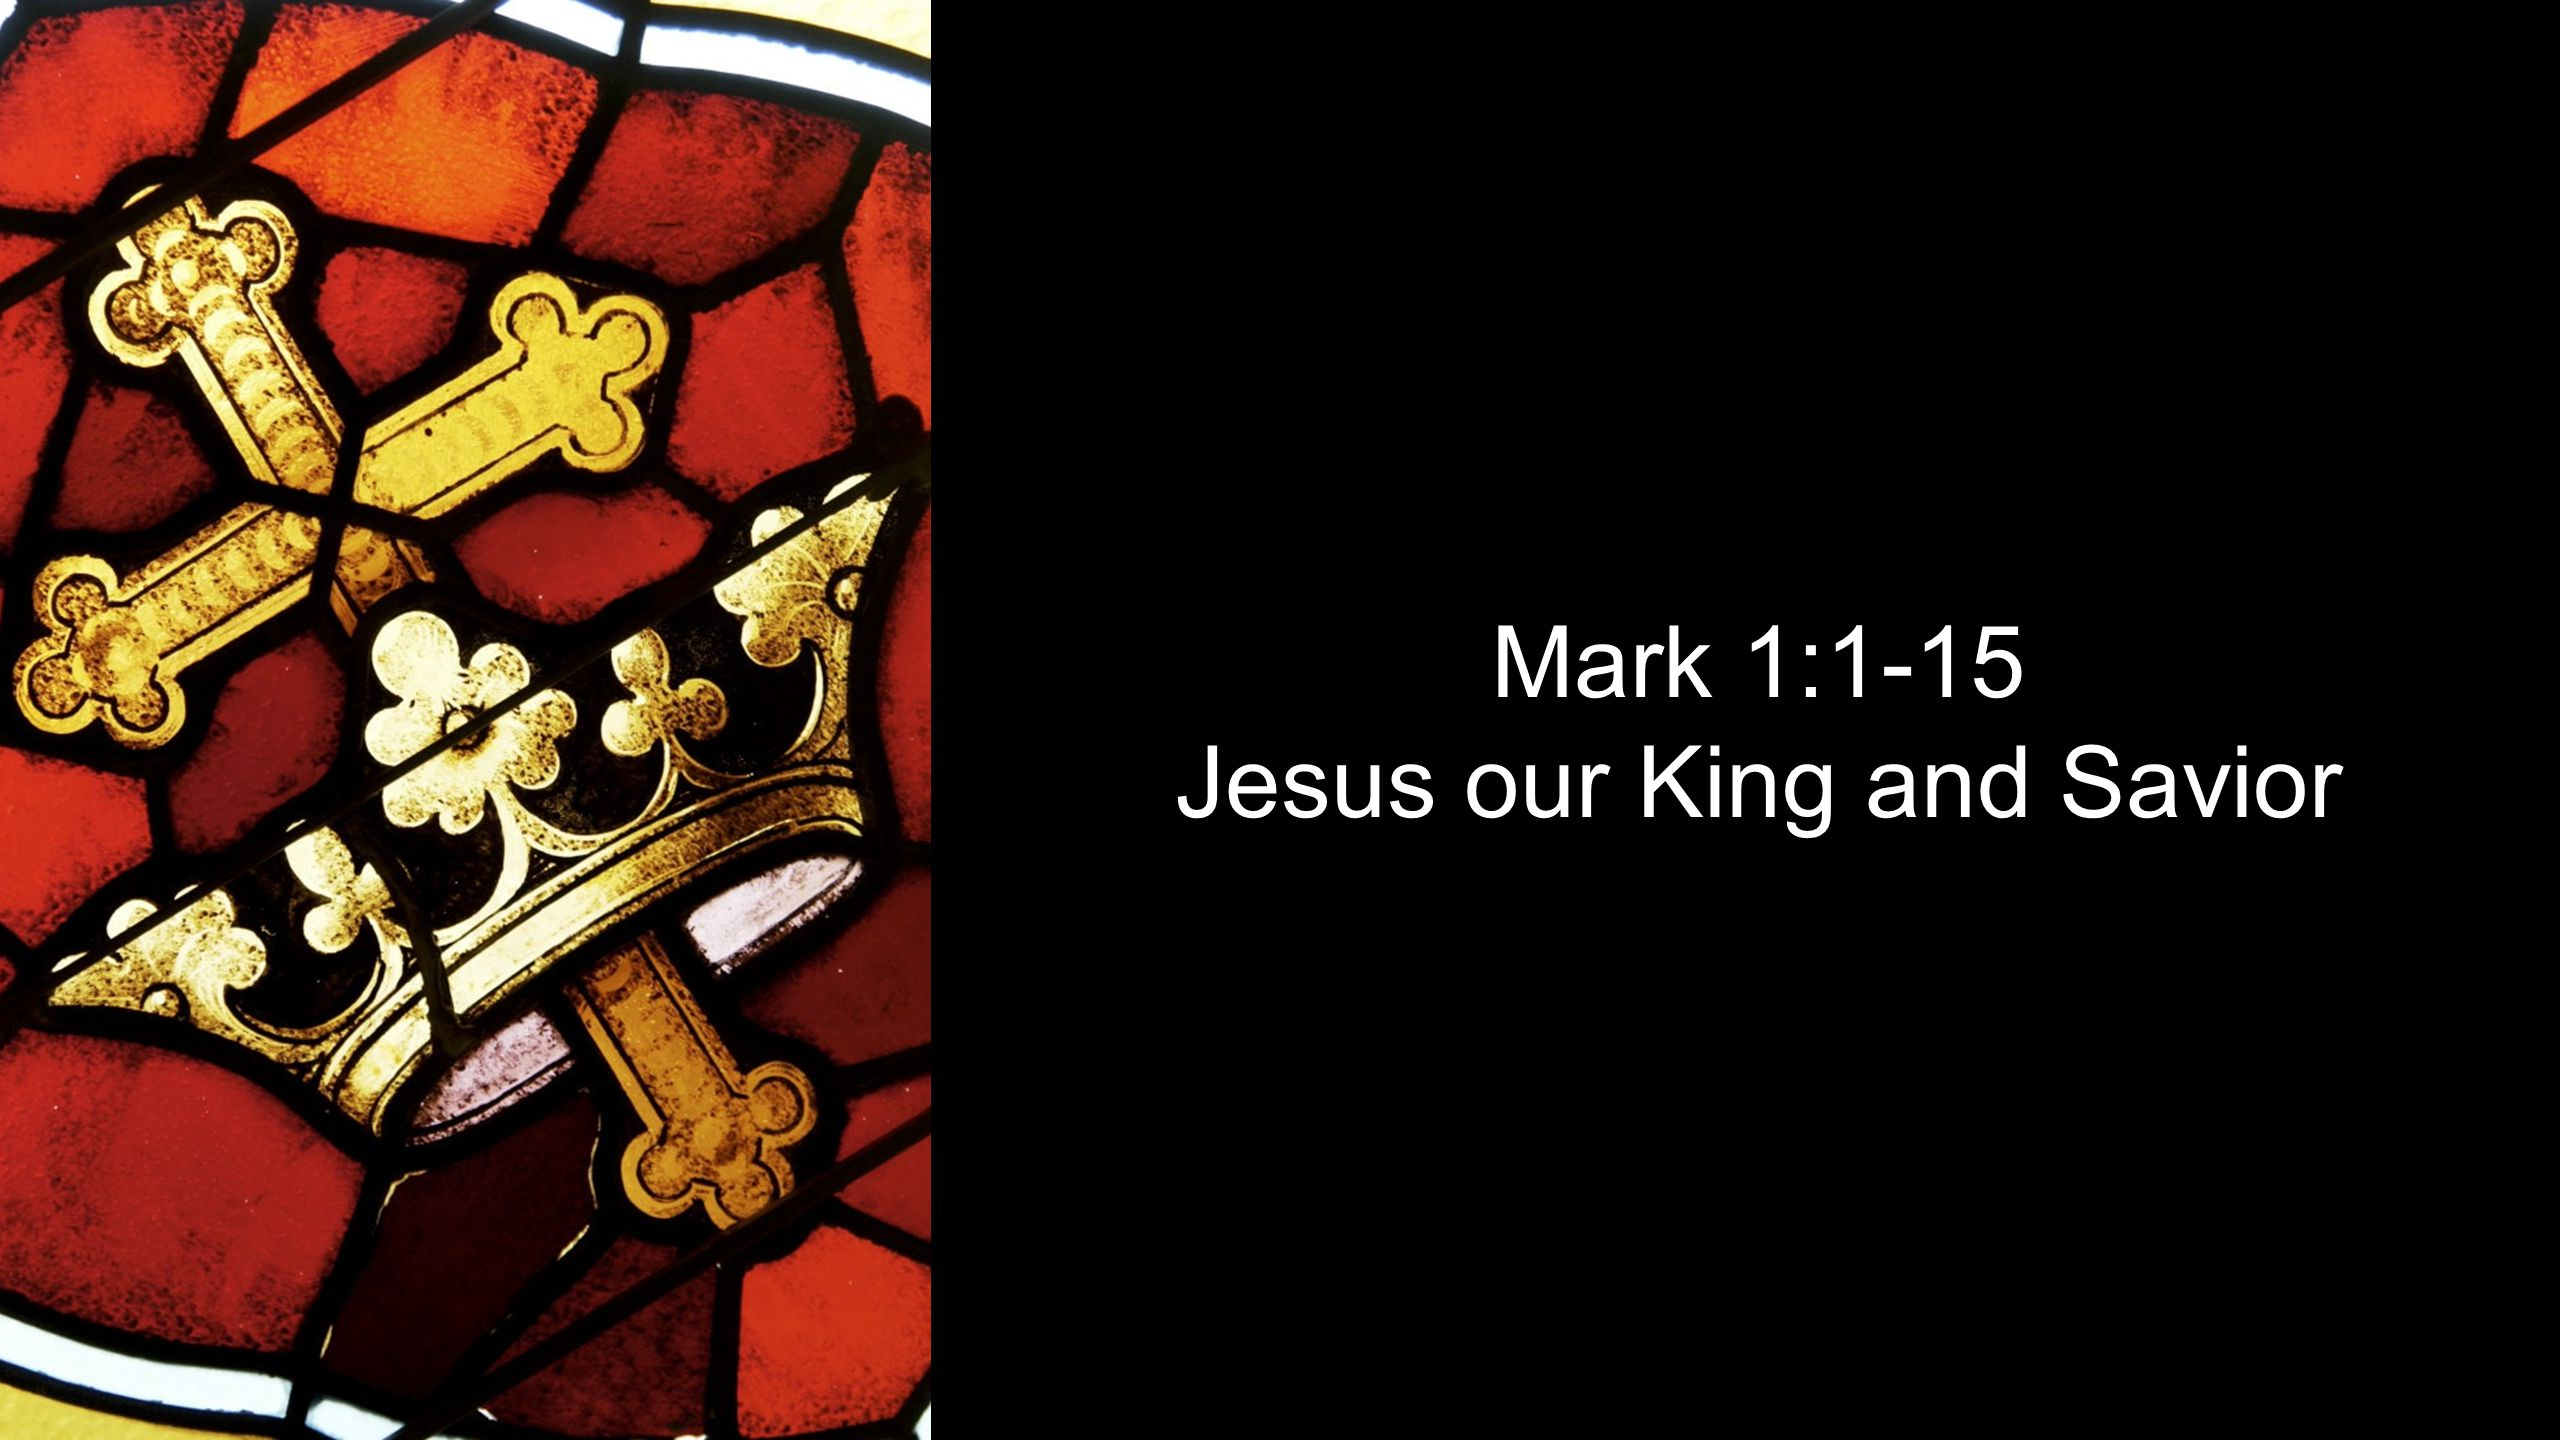 Mark 1:1-8 The beginning of the gospel about Jesus Christ, the Son of God.